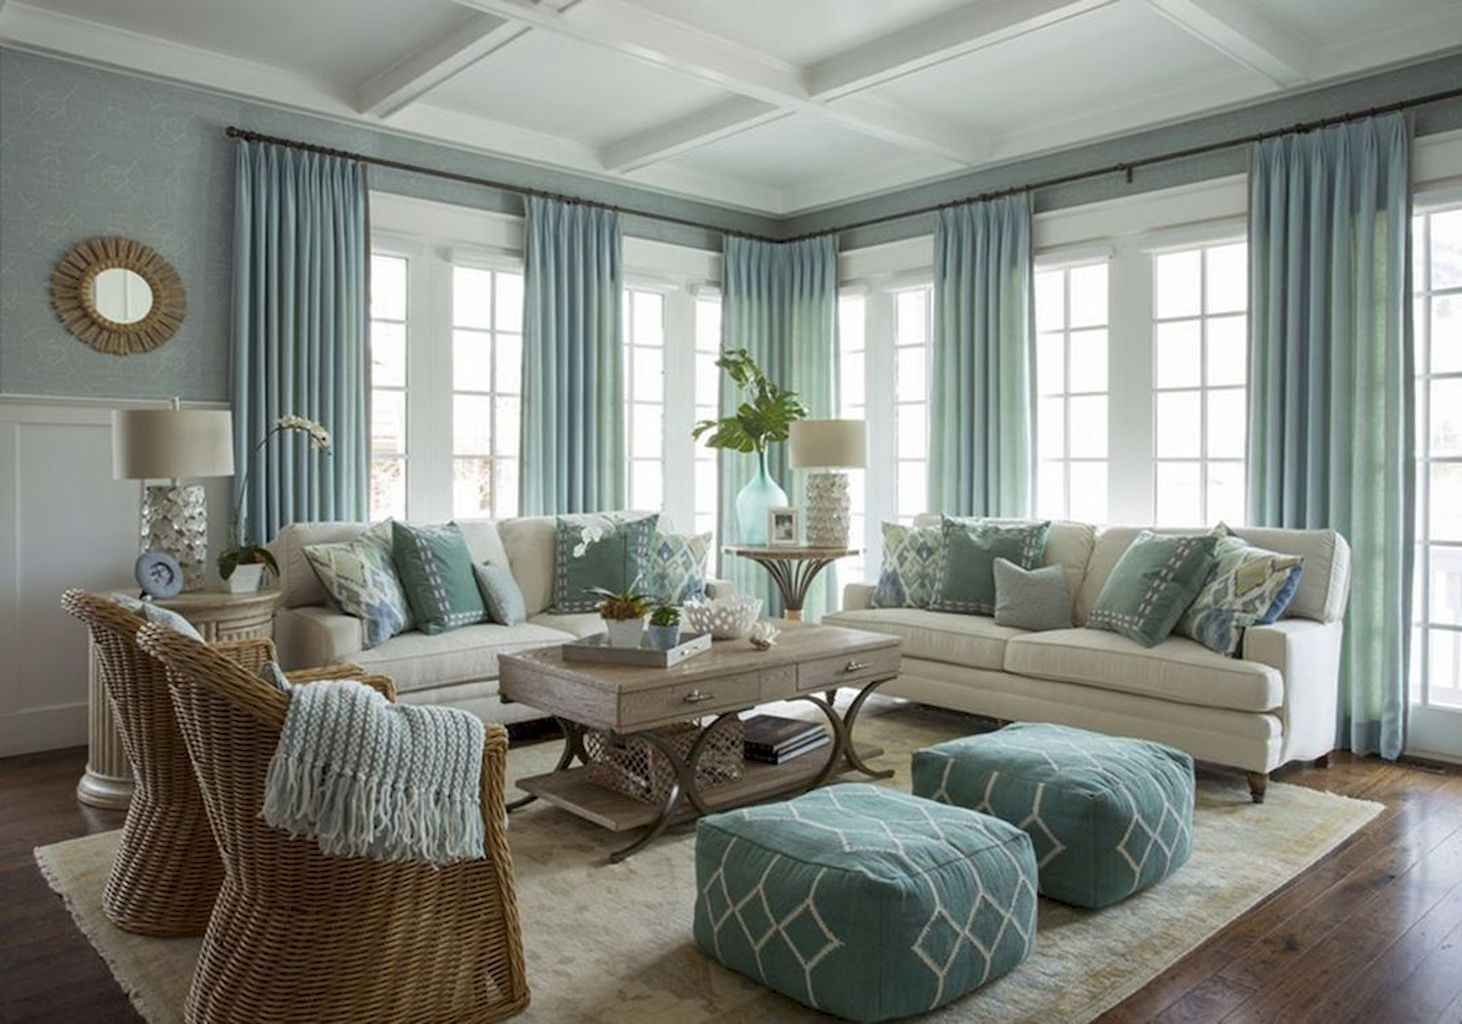 19 Gorgeous Coastal Living Room Decor Ideas #coastallivingrooms